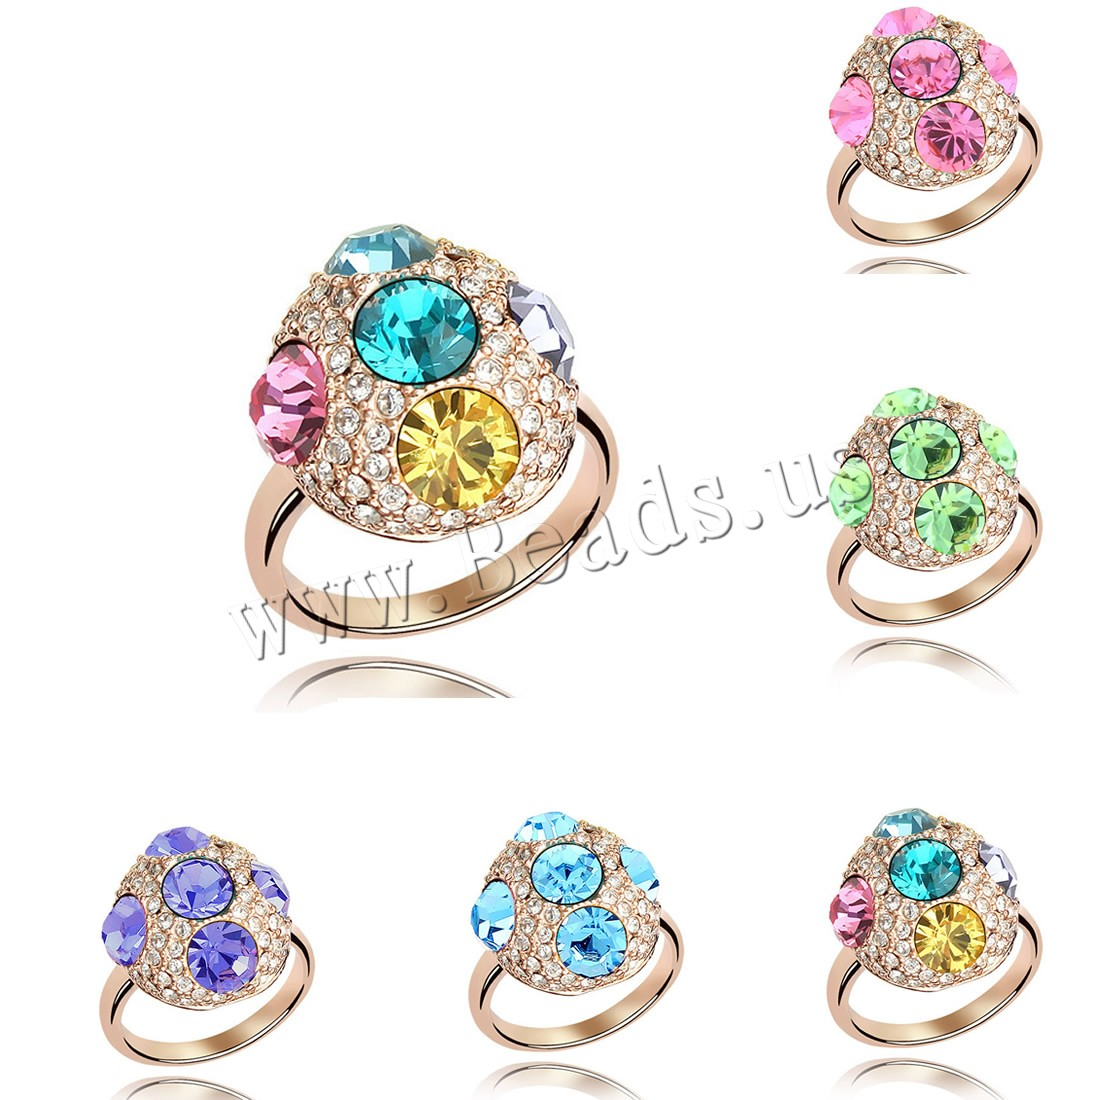 Buy CRYSTALLIZED™ Element Crystal Finger Ring Brass CRYSTALLIZED™ Flat Round real rose gold plated woman & faceted colors choice nickel lead & cadmium free 16mm US Ring Size:6-9 Sold PC